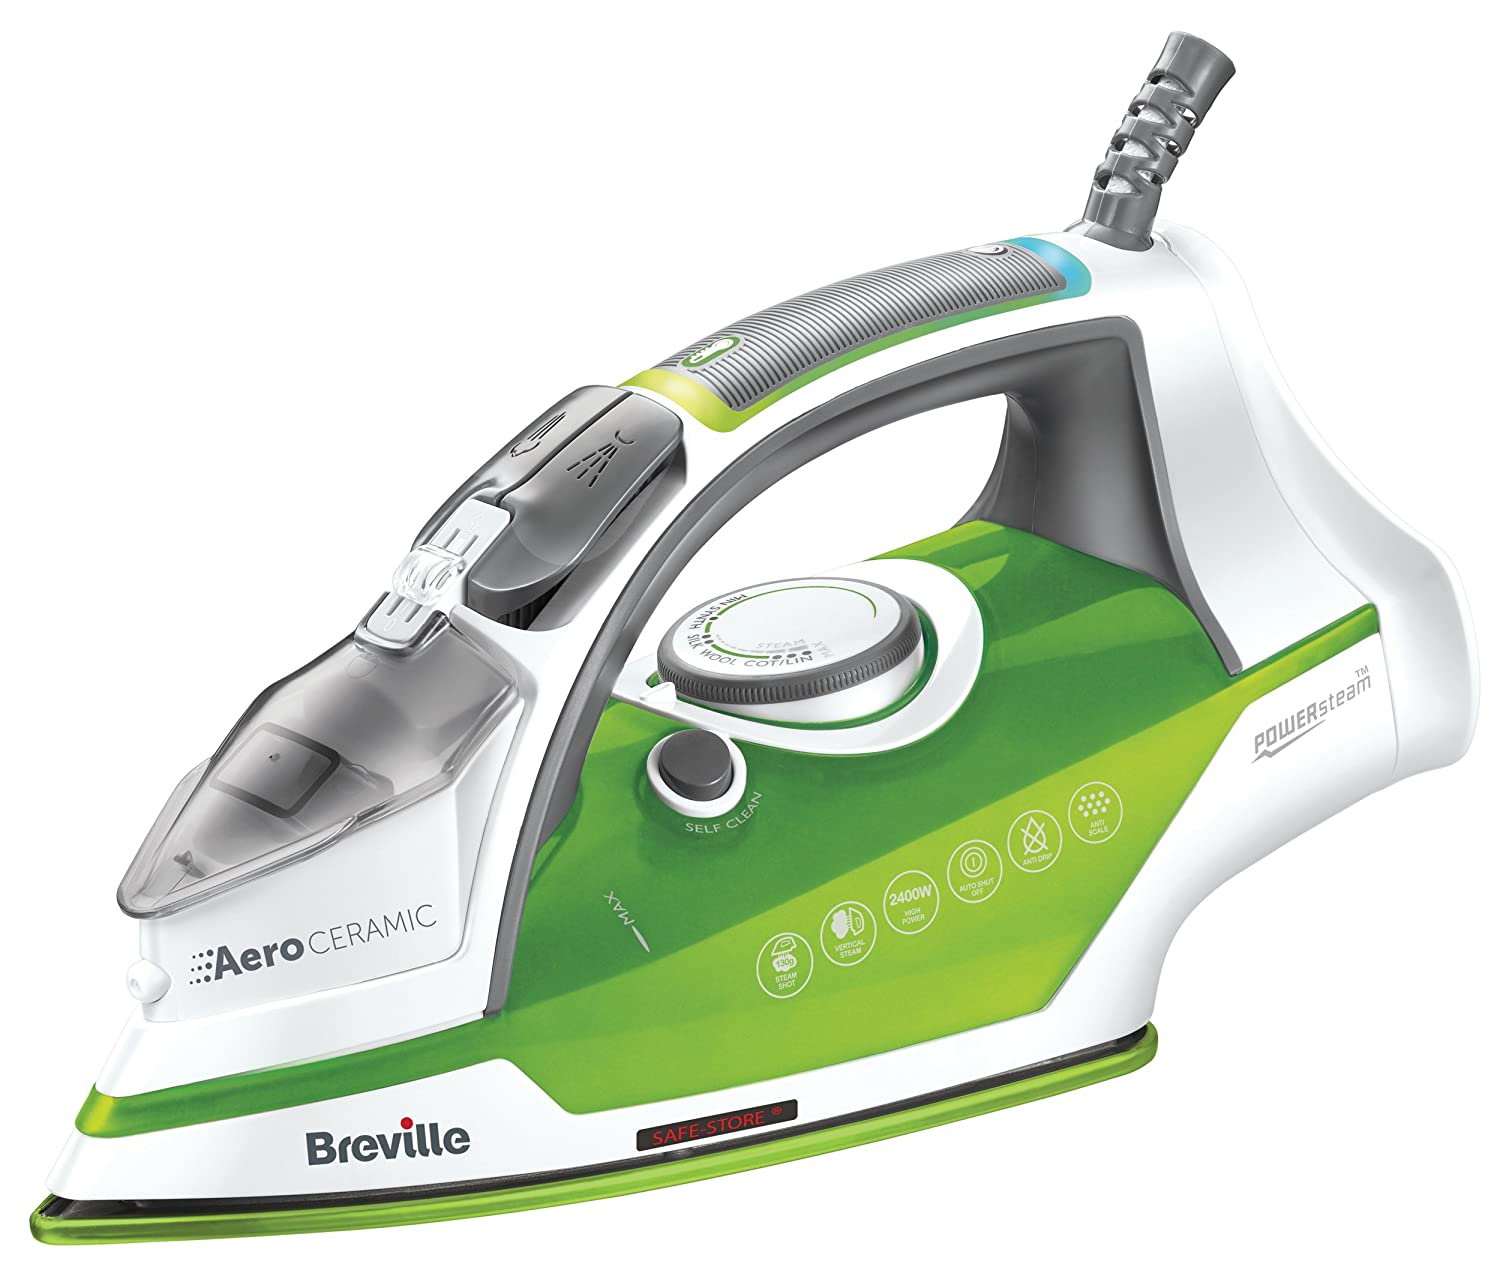 Breville VIN393 Aero Ceramic Steam Iron, 2400 W [Energy Class A] Jarden Consumer Solutions